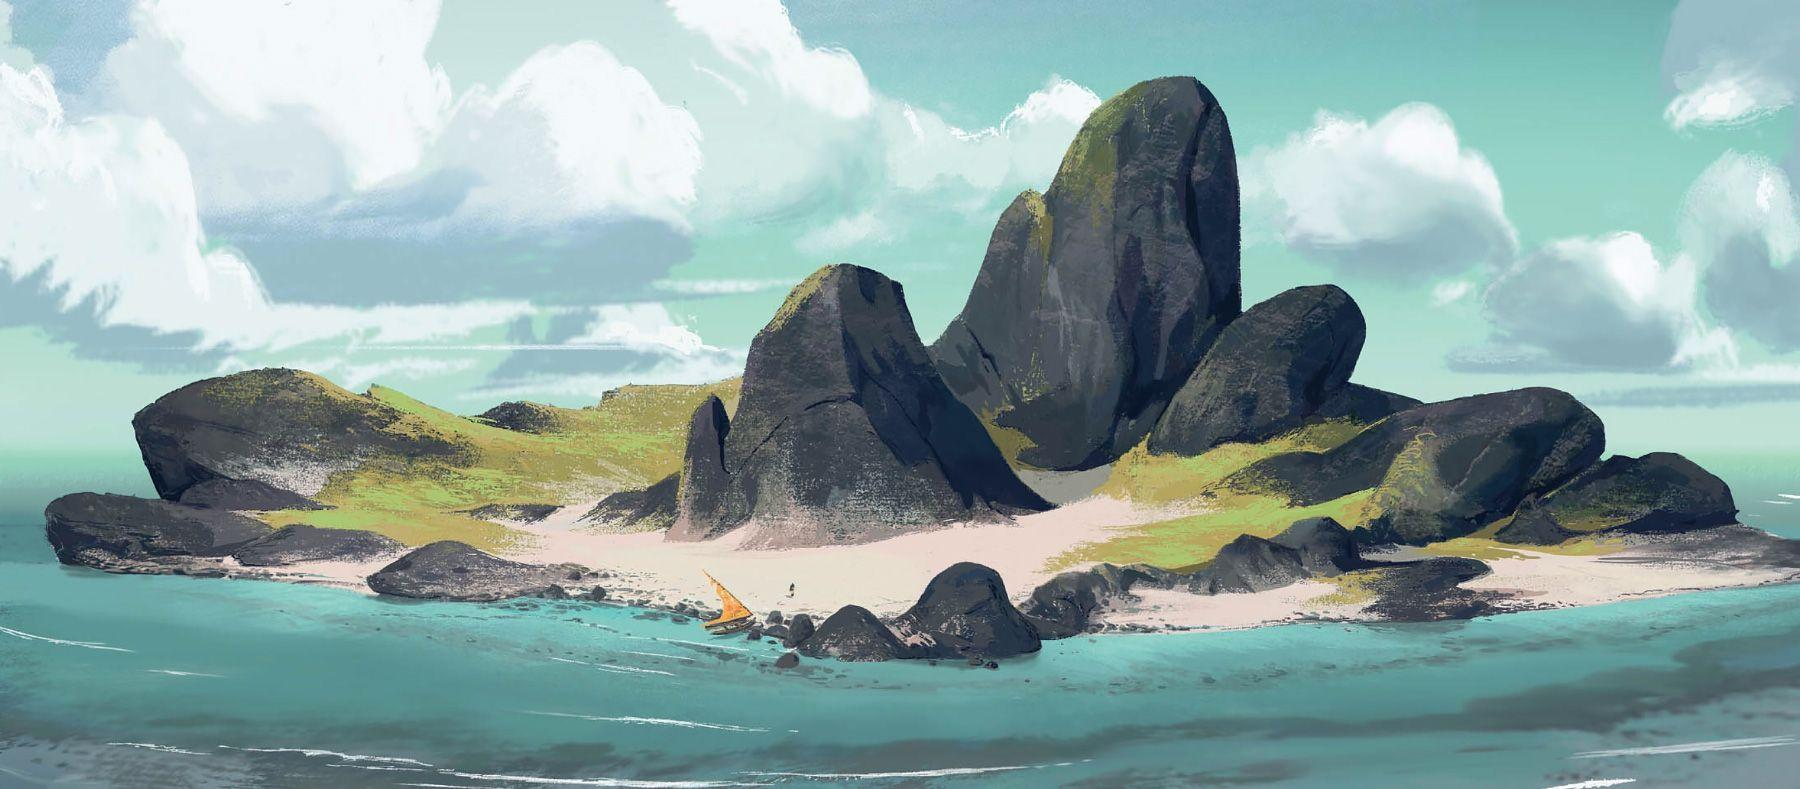 disney-the-art-of-moana-concept-art-illustration-14-kevin-nelson ...